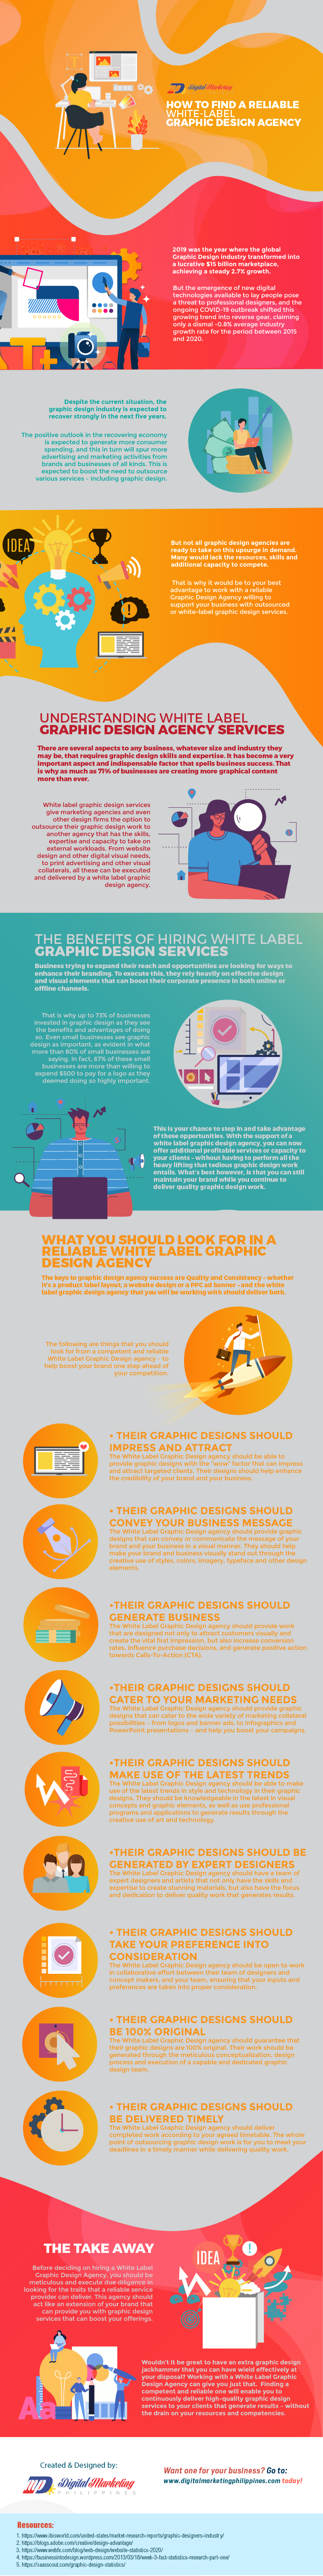 How to Find a Reliable White-Label Graphic Design Agency [Infographic]